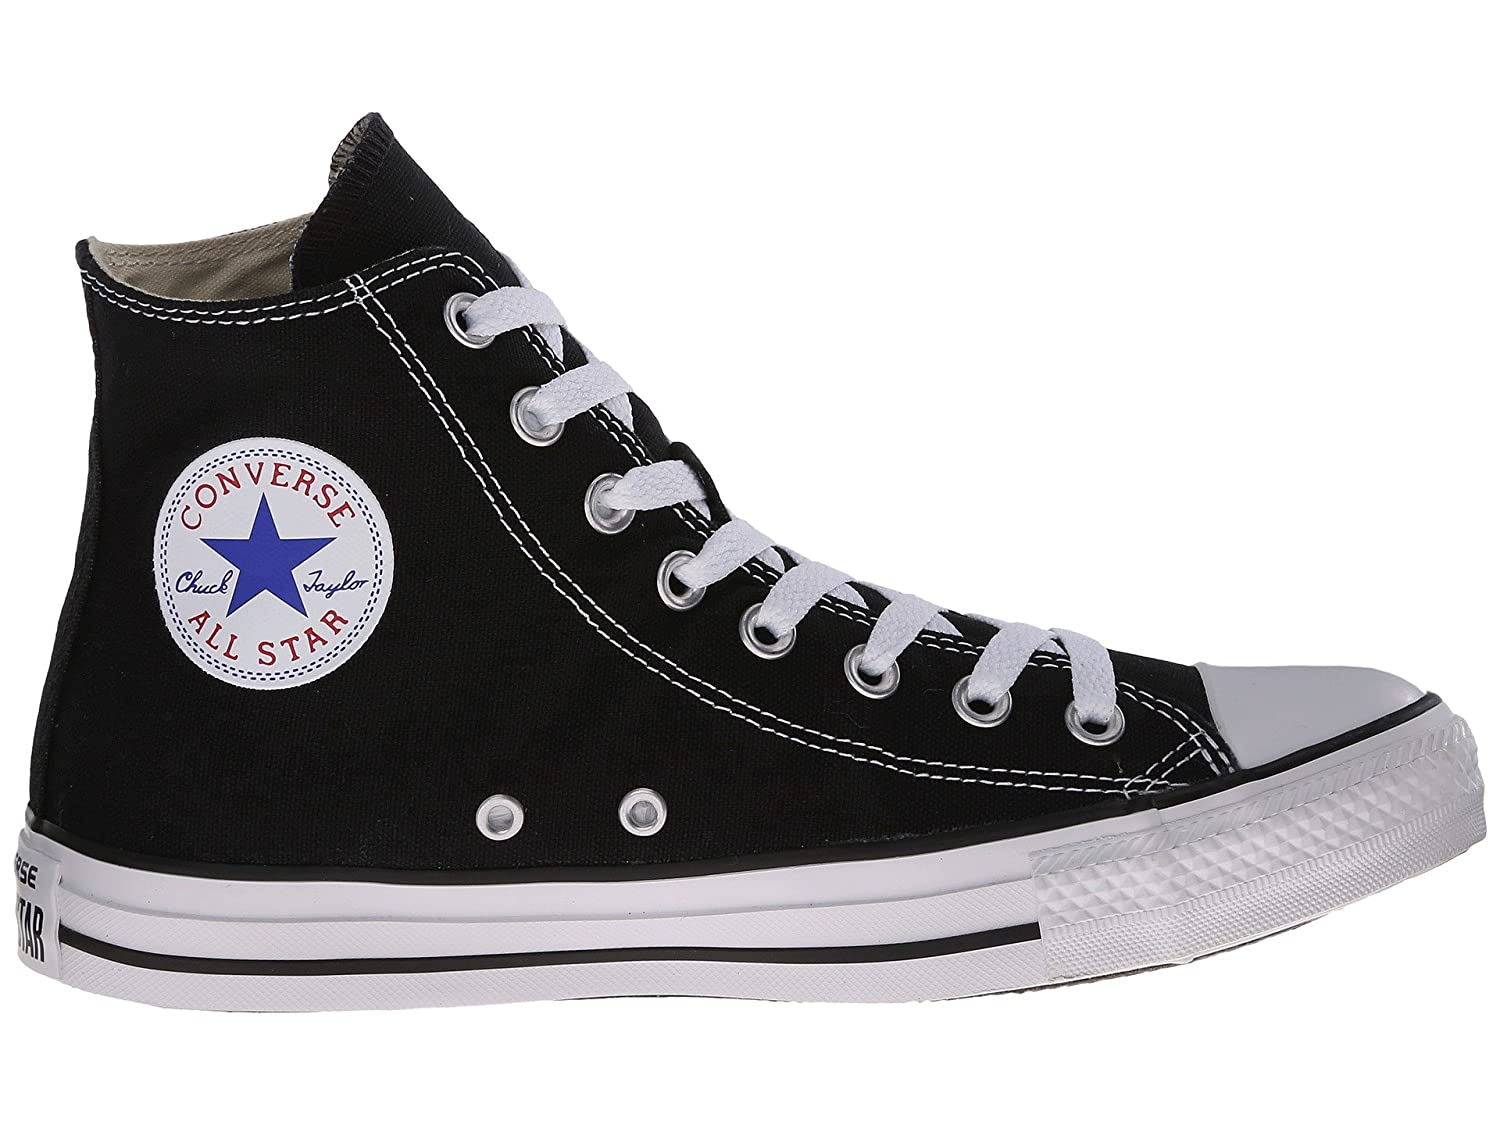 93e047b29b4d Chuck Taylor All Star Classic Colors The Chuck Taylor All Star high top is  the most iconic sneaker in the world